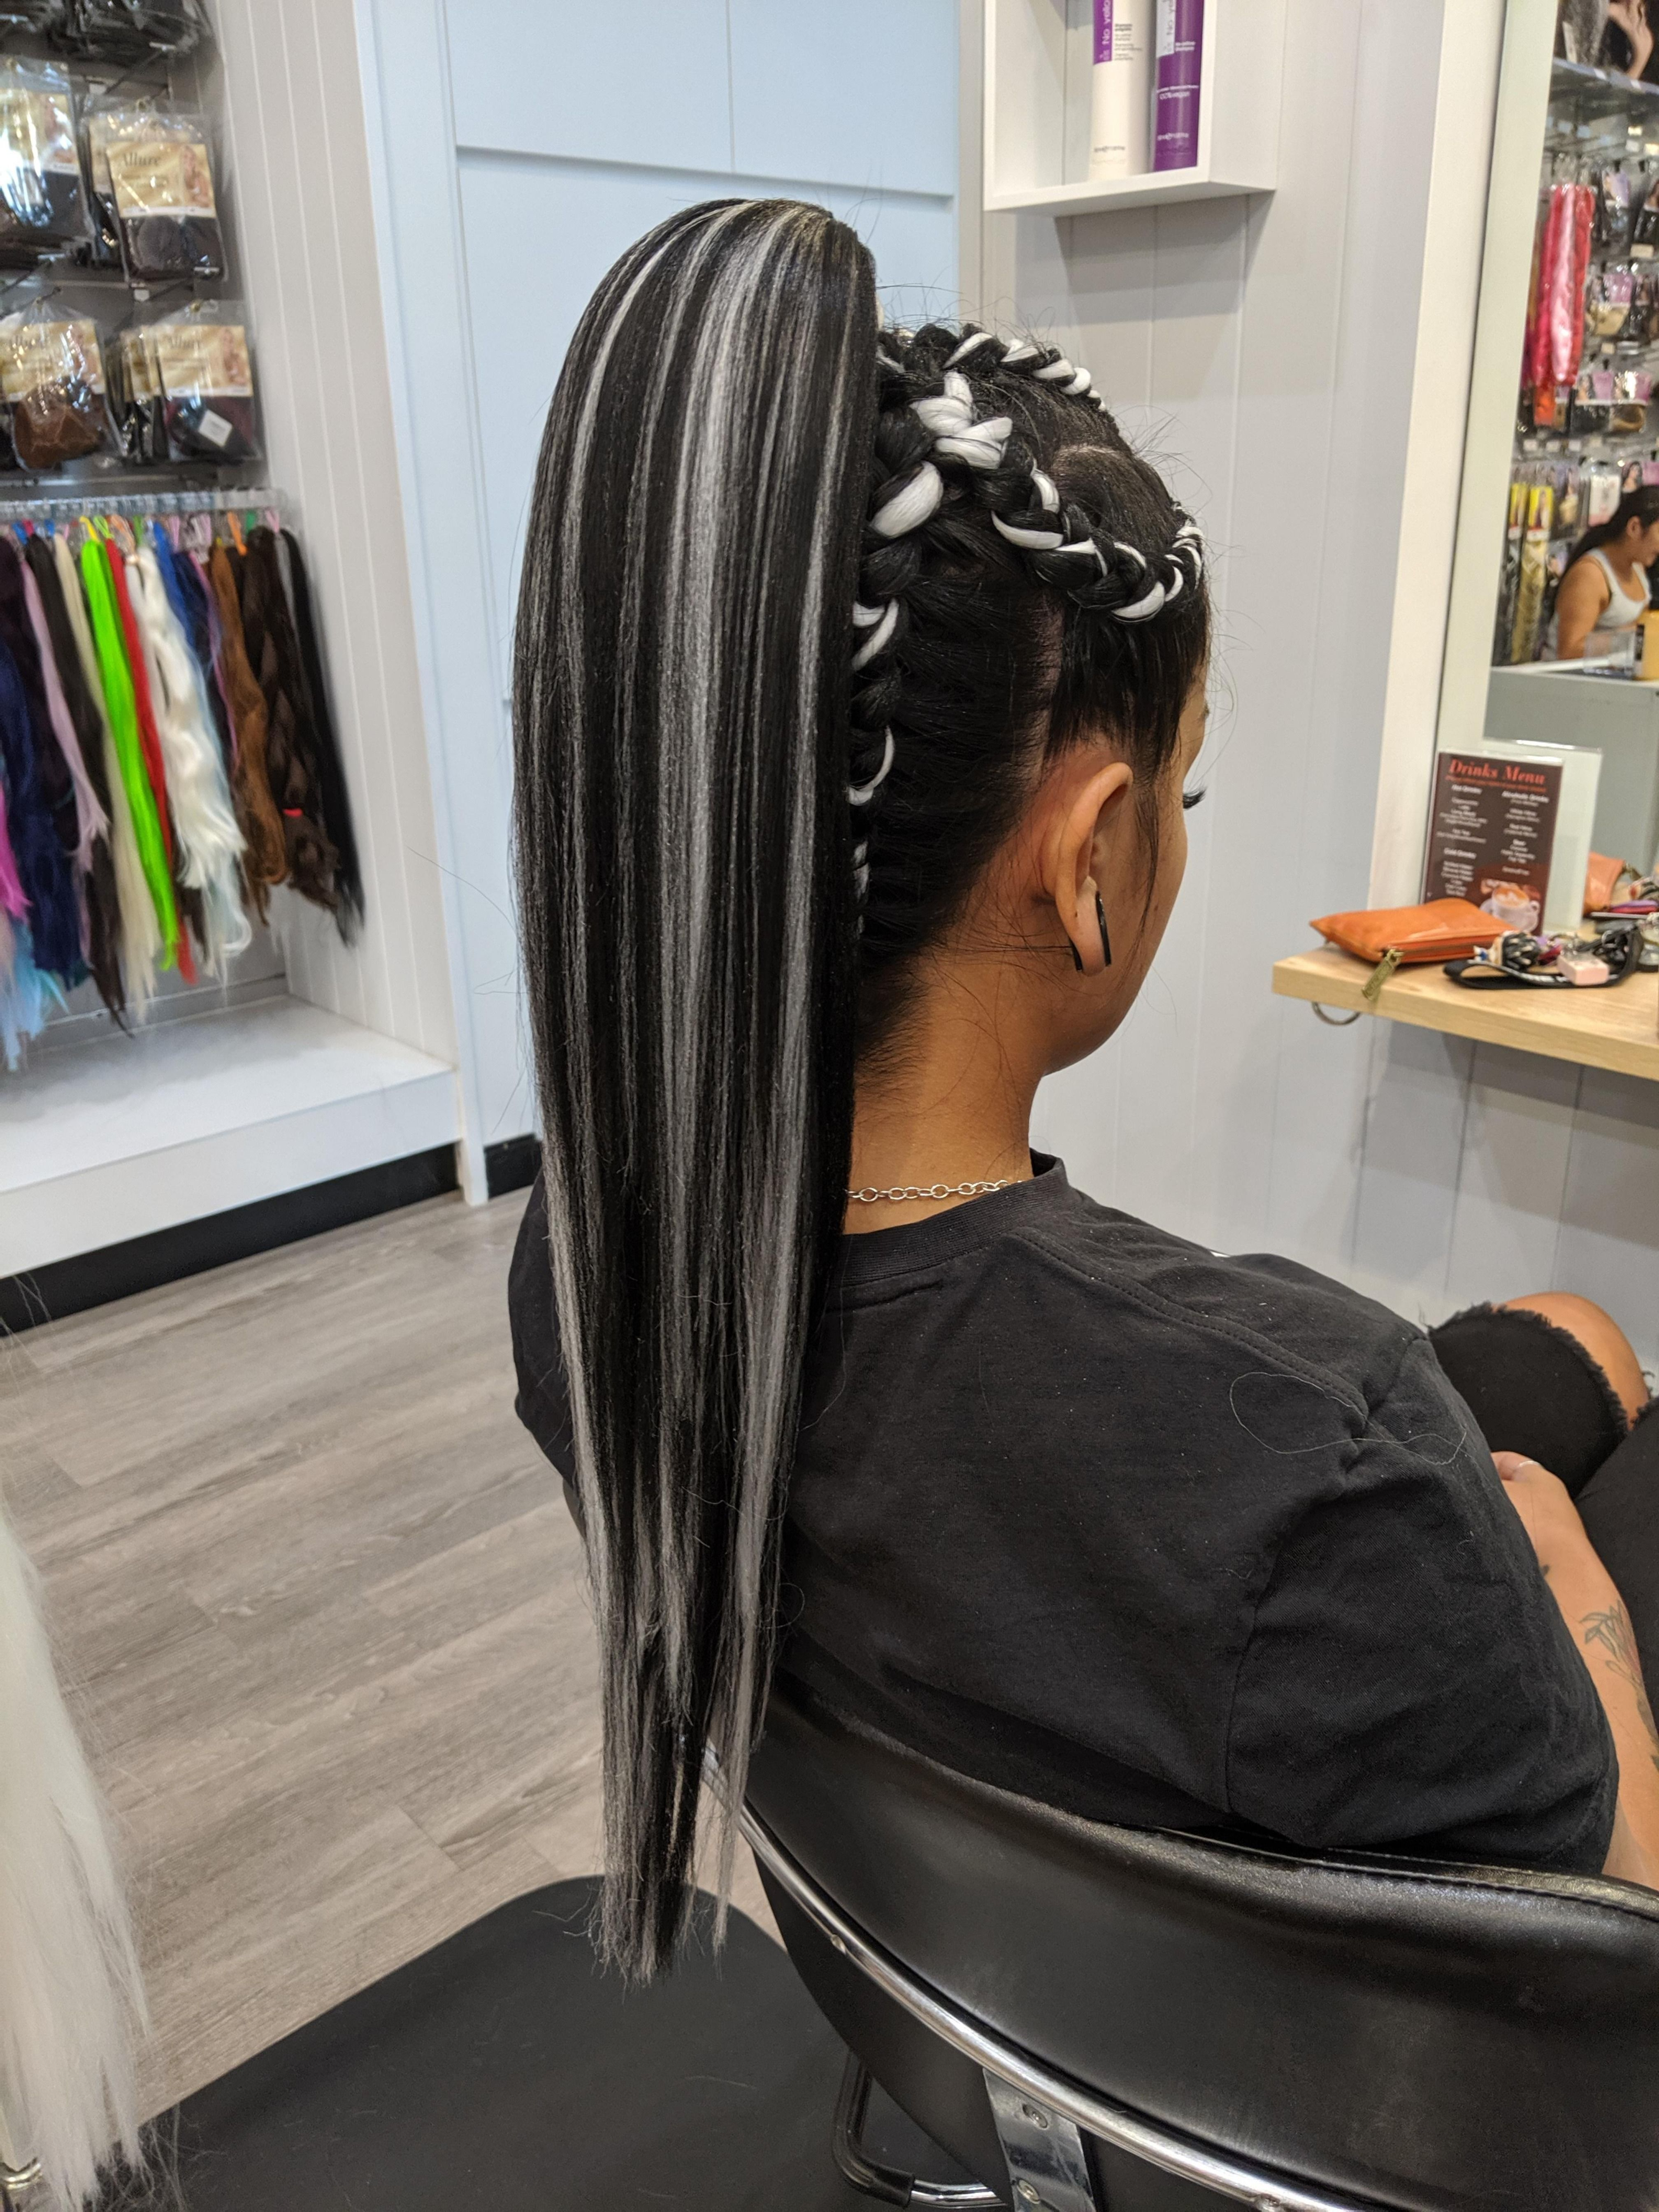 Braided Ponytail Extension Braids With Extensions Colored Hair Extensions Allure Hair